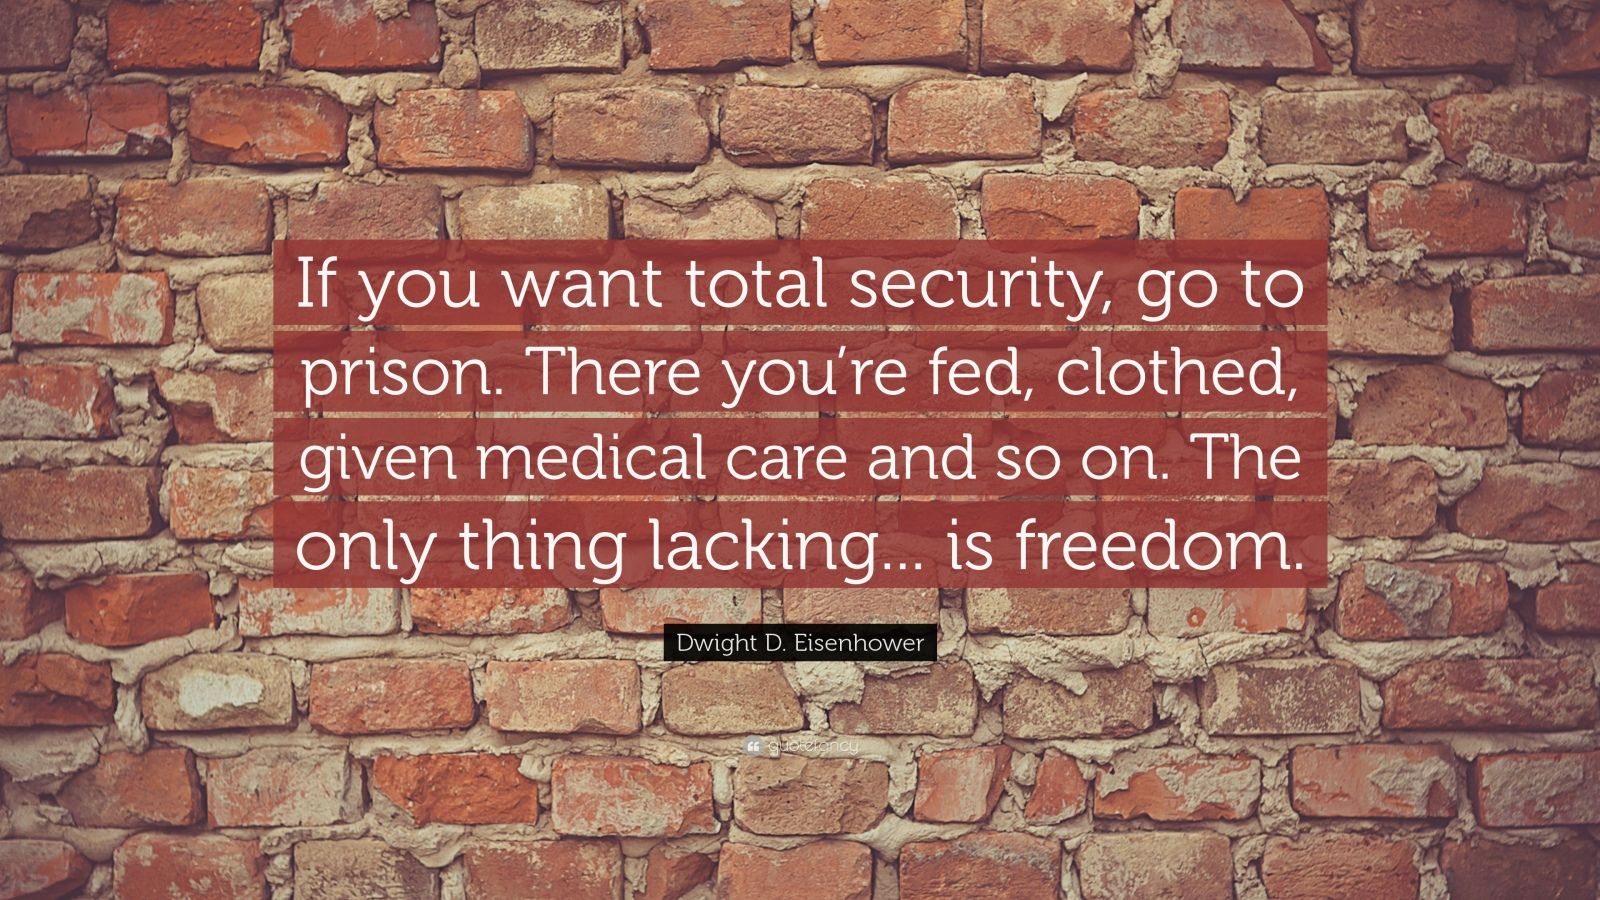 """Dwight D. Eisenhower Quote: """"If you want total security, go to prison. There you're fed, clothed, given medical care and so on. The only thing lacking... is freedom."""""""